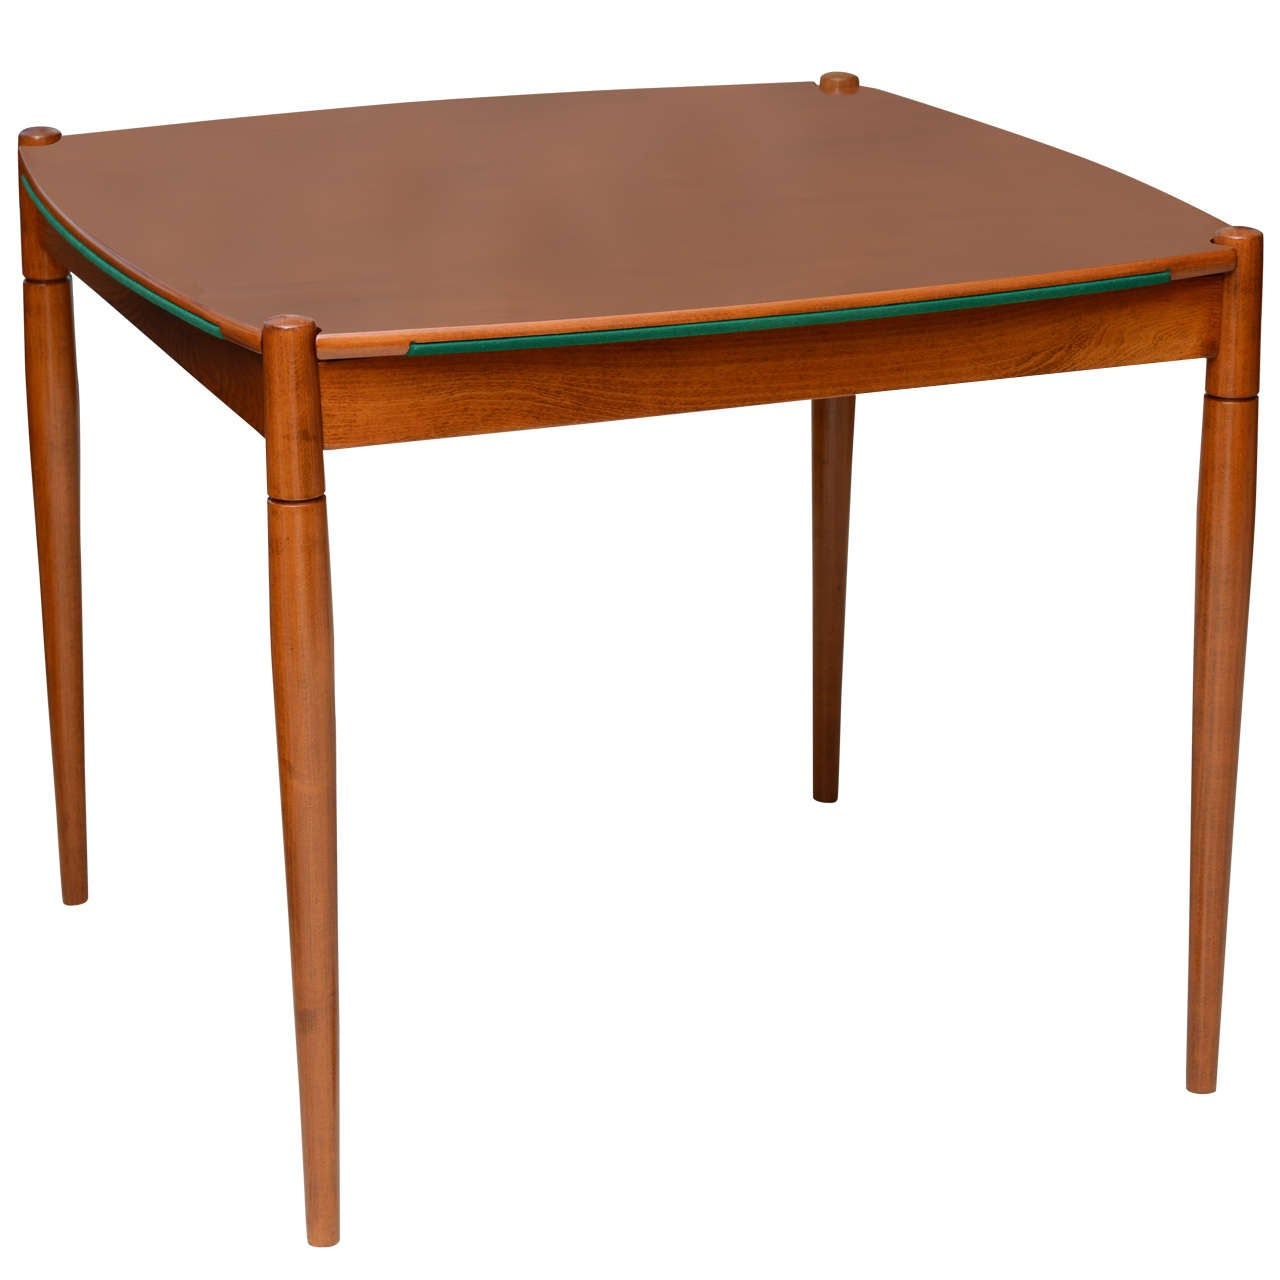 Italian Modern Walnut Game Table by Gio Ponti for Singer & Sons